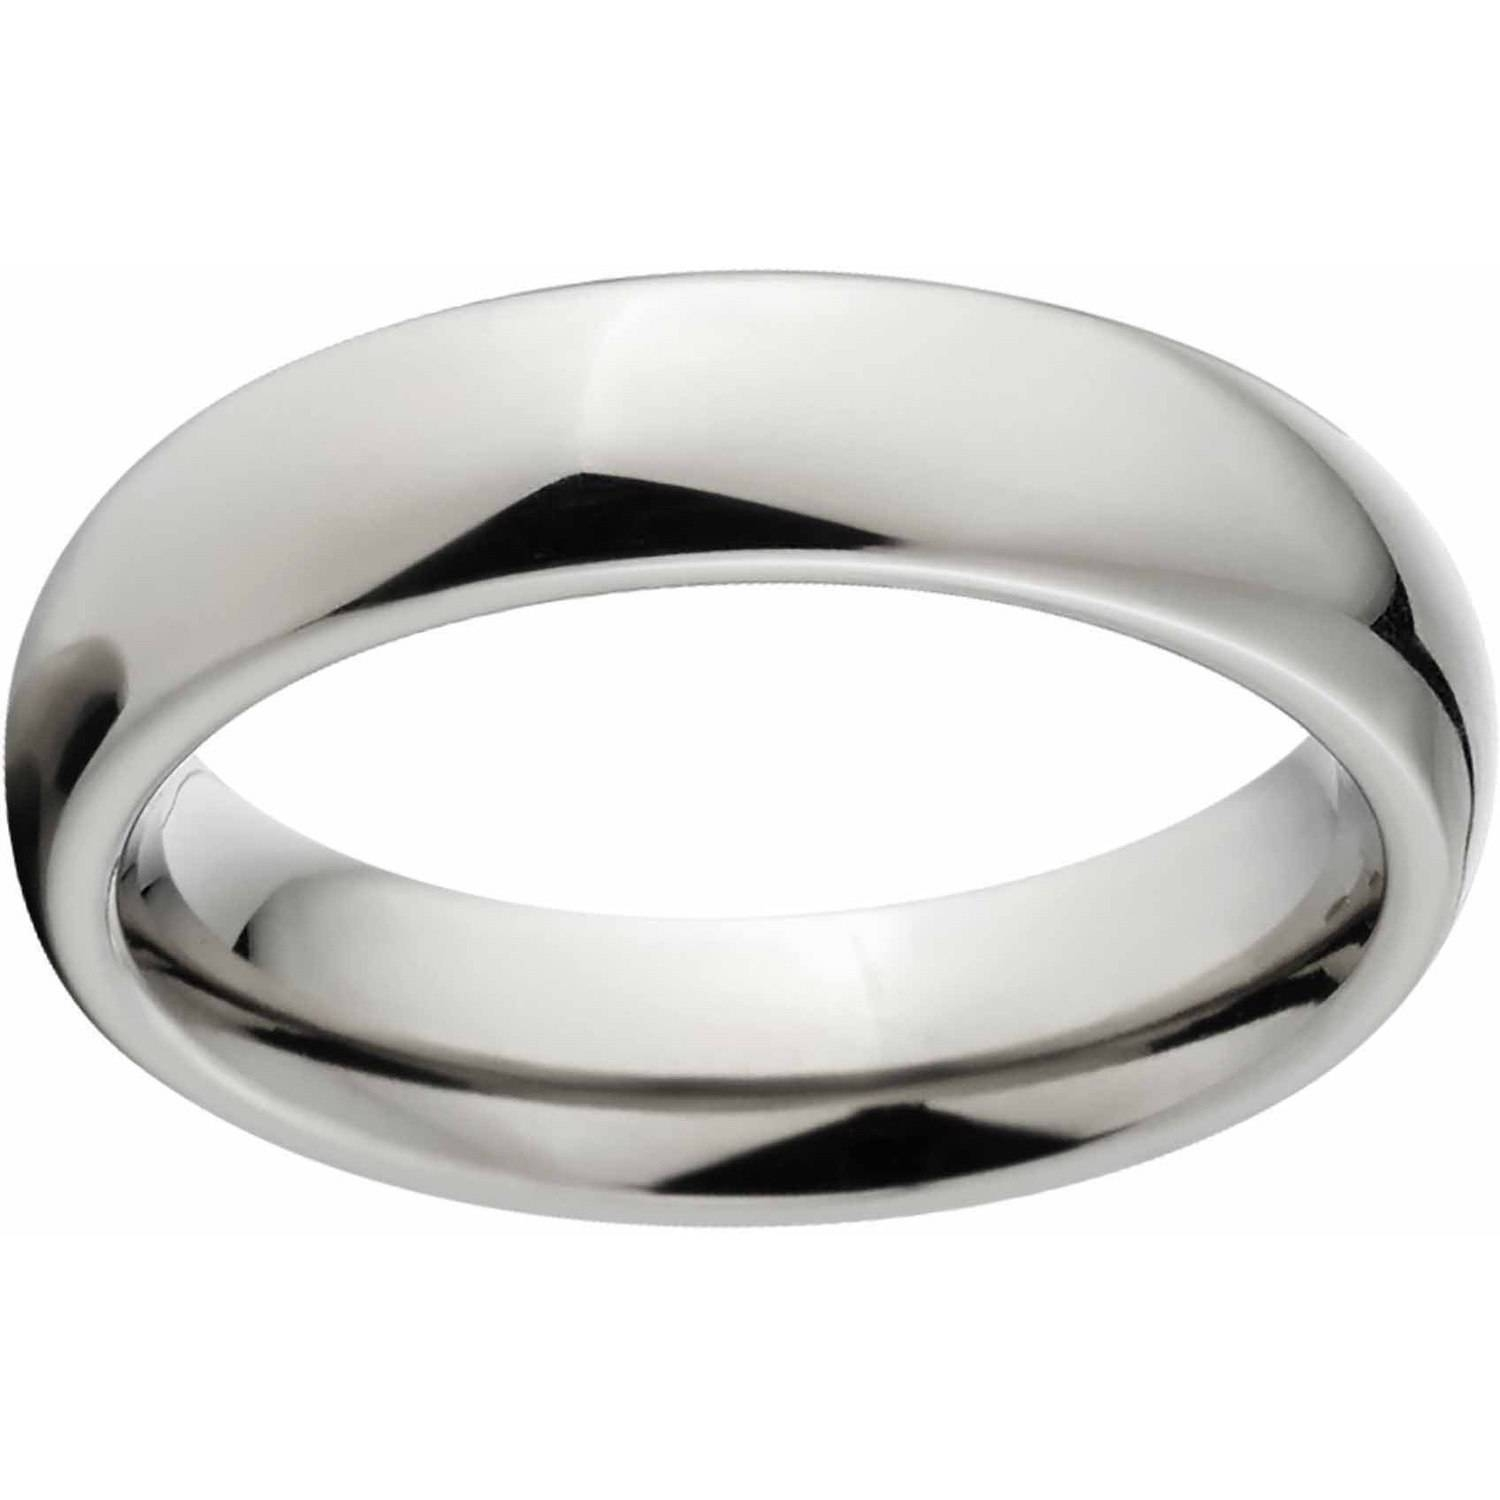 Polished 4Mm Titanium Wedding Band With Comfort Fit Design Throughout Walmart Wedding Bands For Men (View 8 of 15)